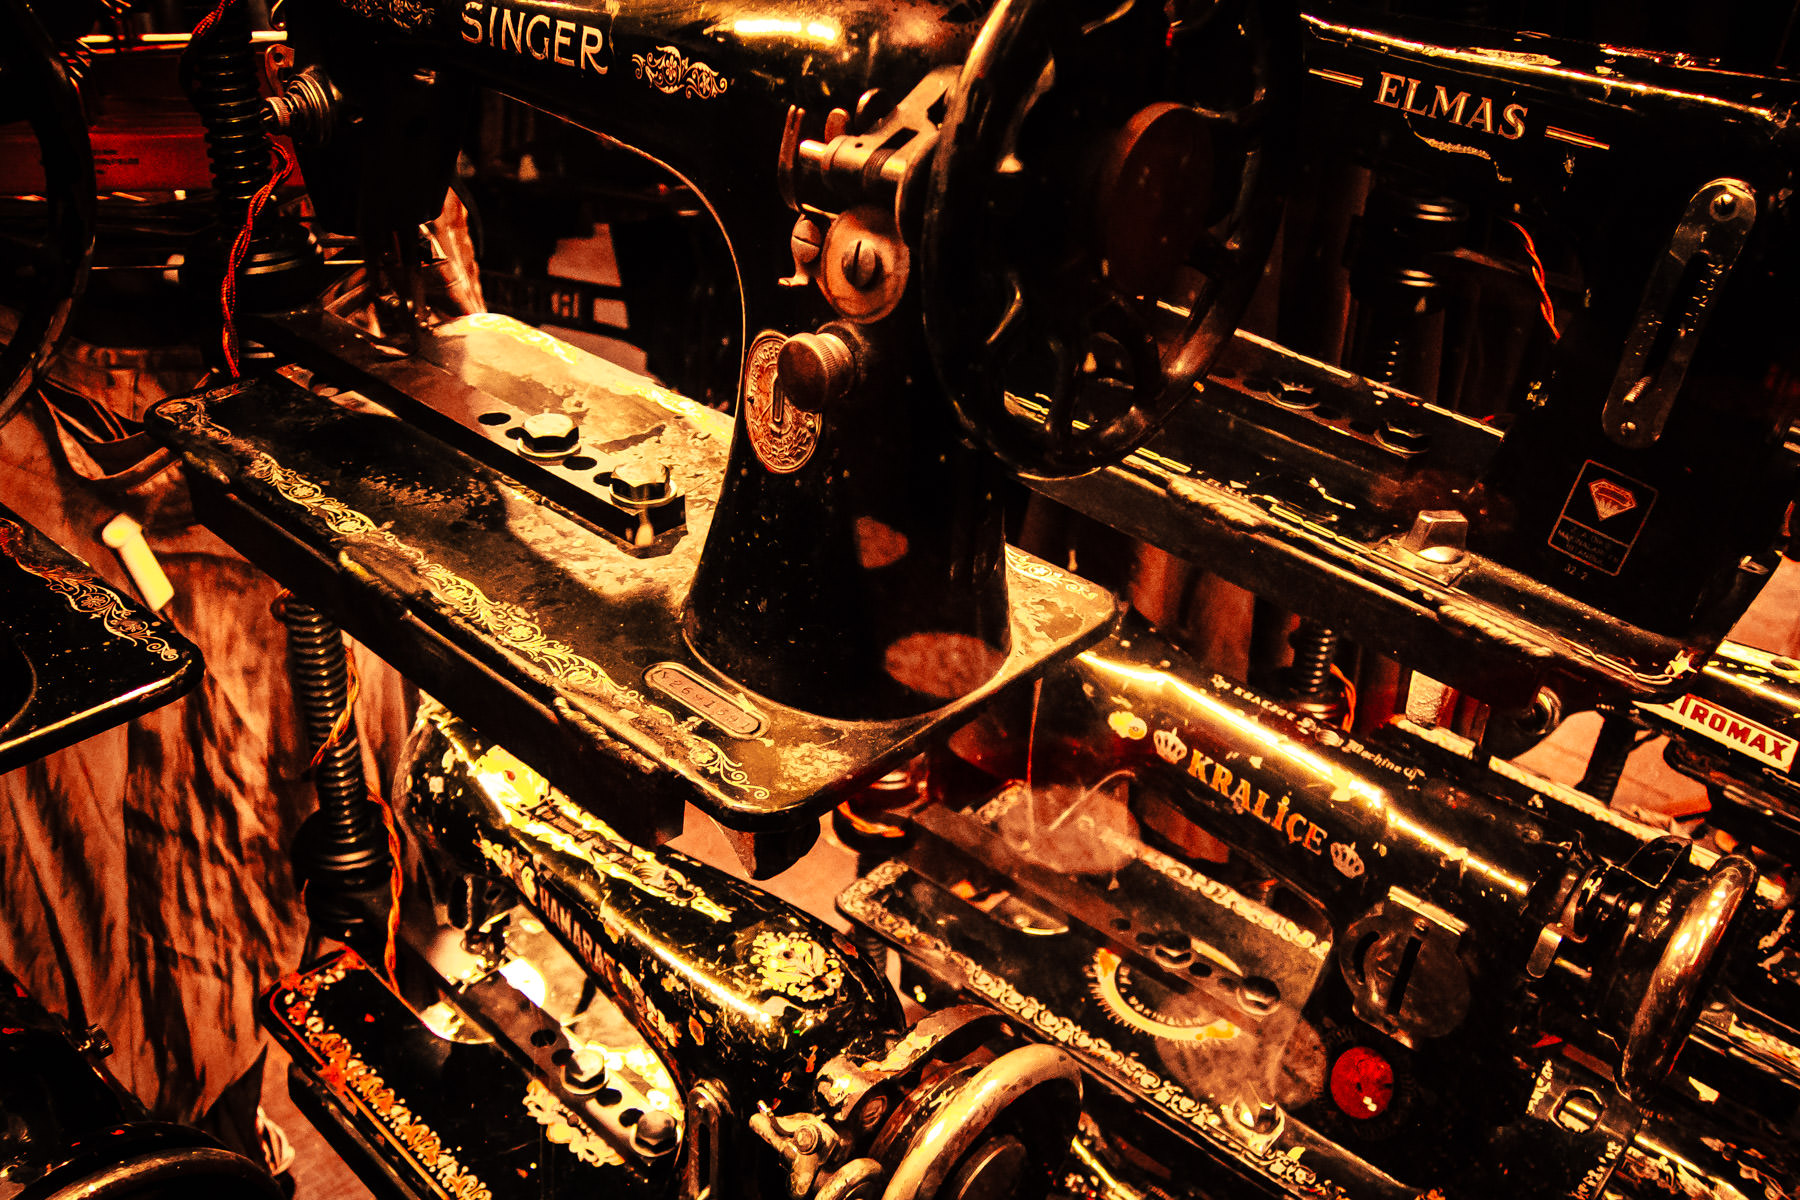 Just a few of the 1100 antique sewing machines in the windows of the AllSaints Spitalfields store at the Cosmopolitan Las Vegas.